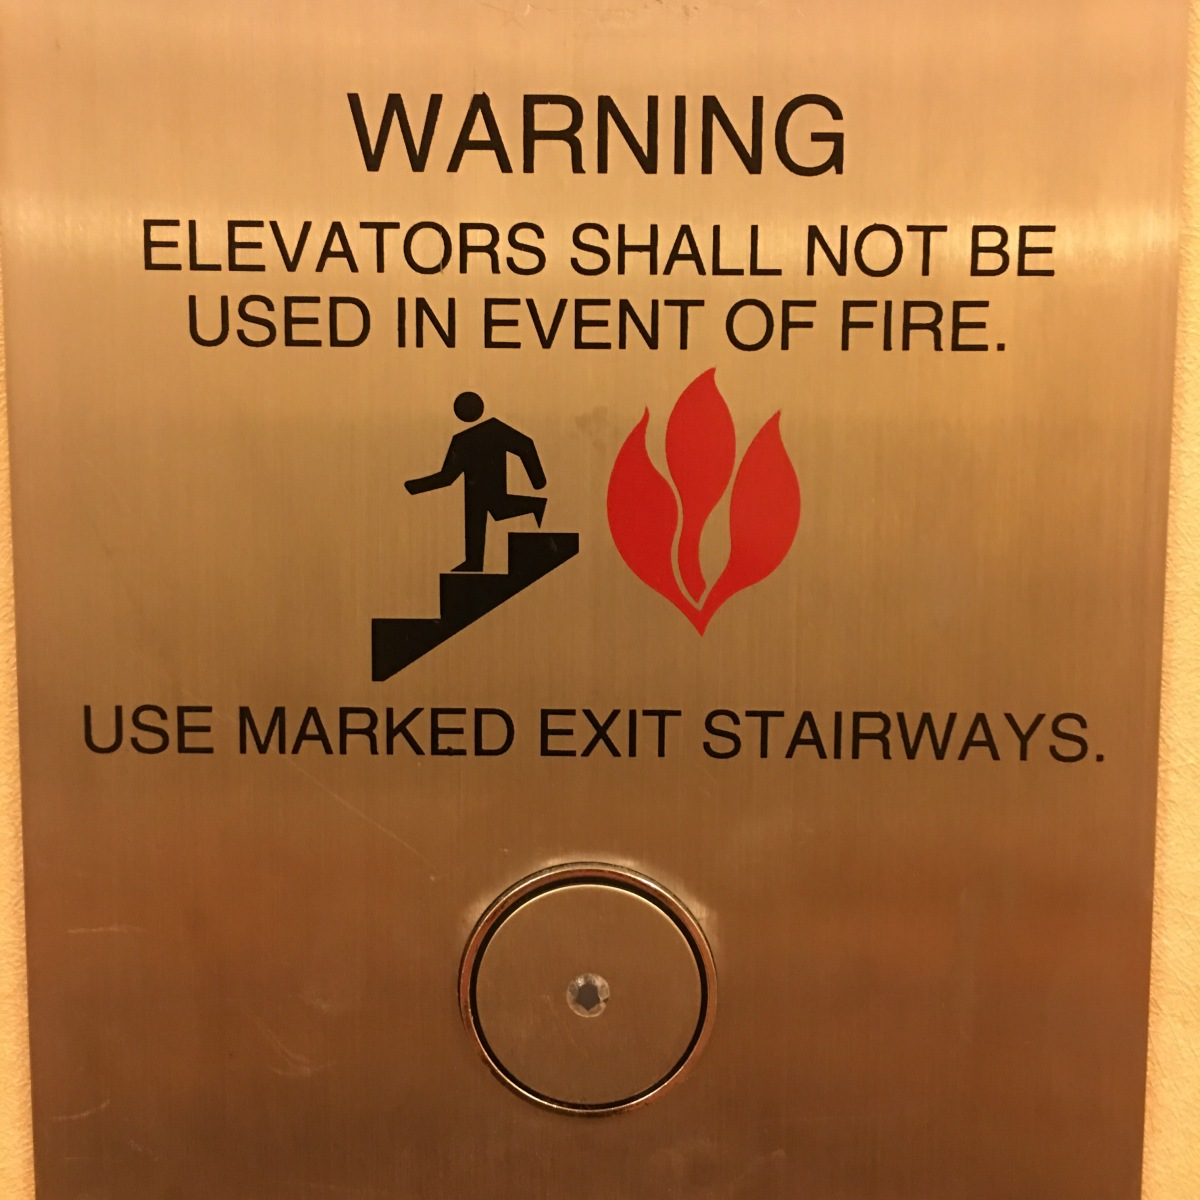 Elevators shall not be used in case of fire–seriously??